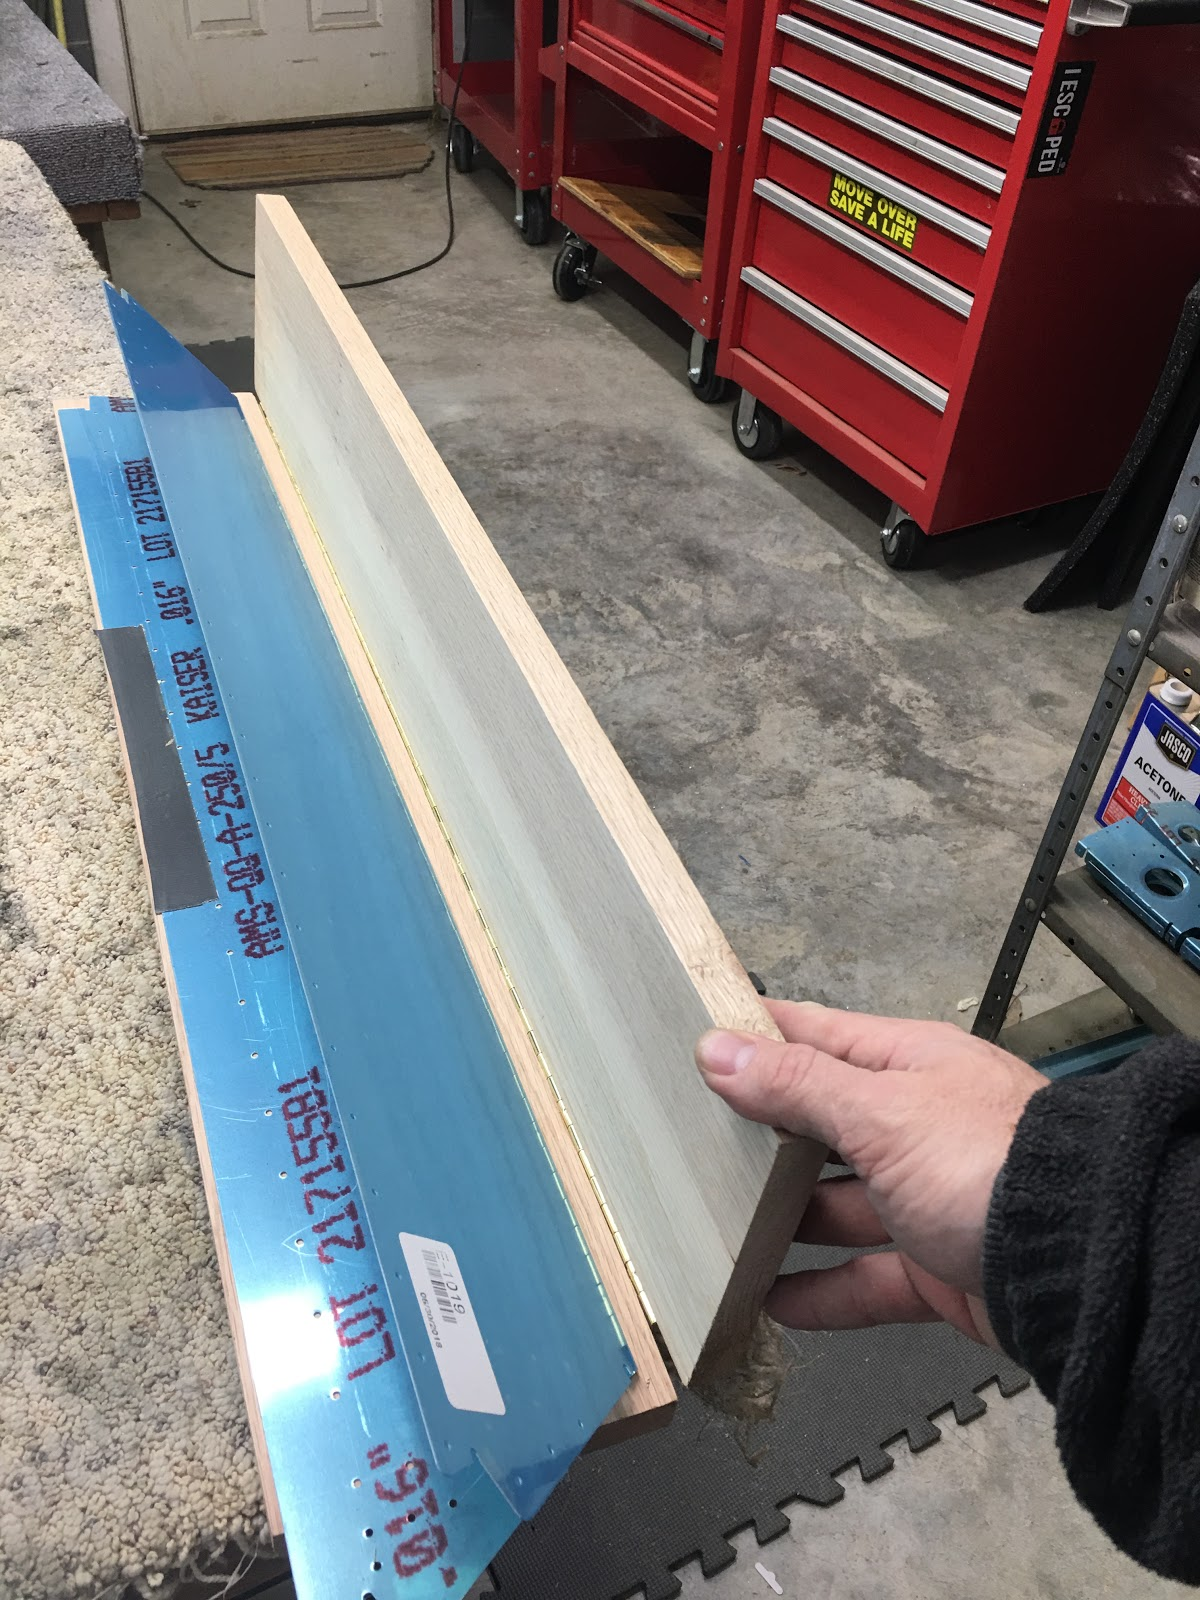 Brantel's RV-10 Build Blog: Tools, Consumables and Misc